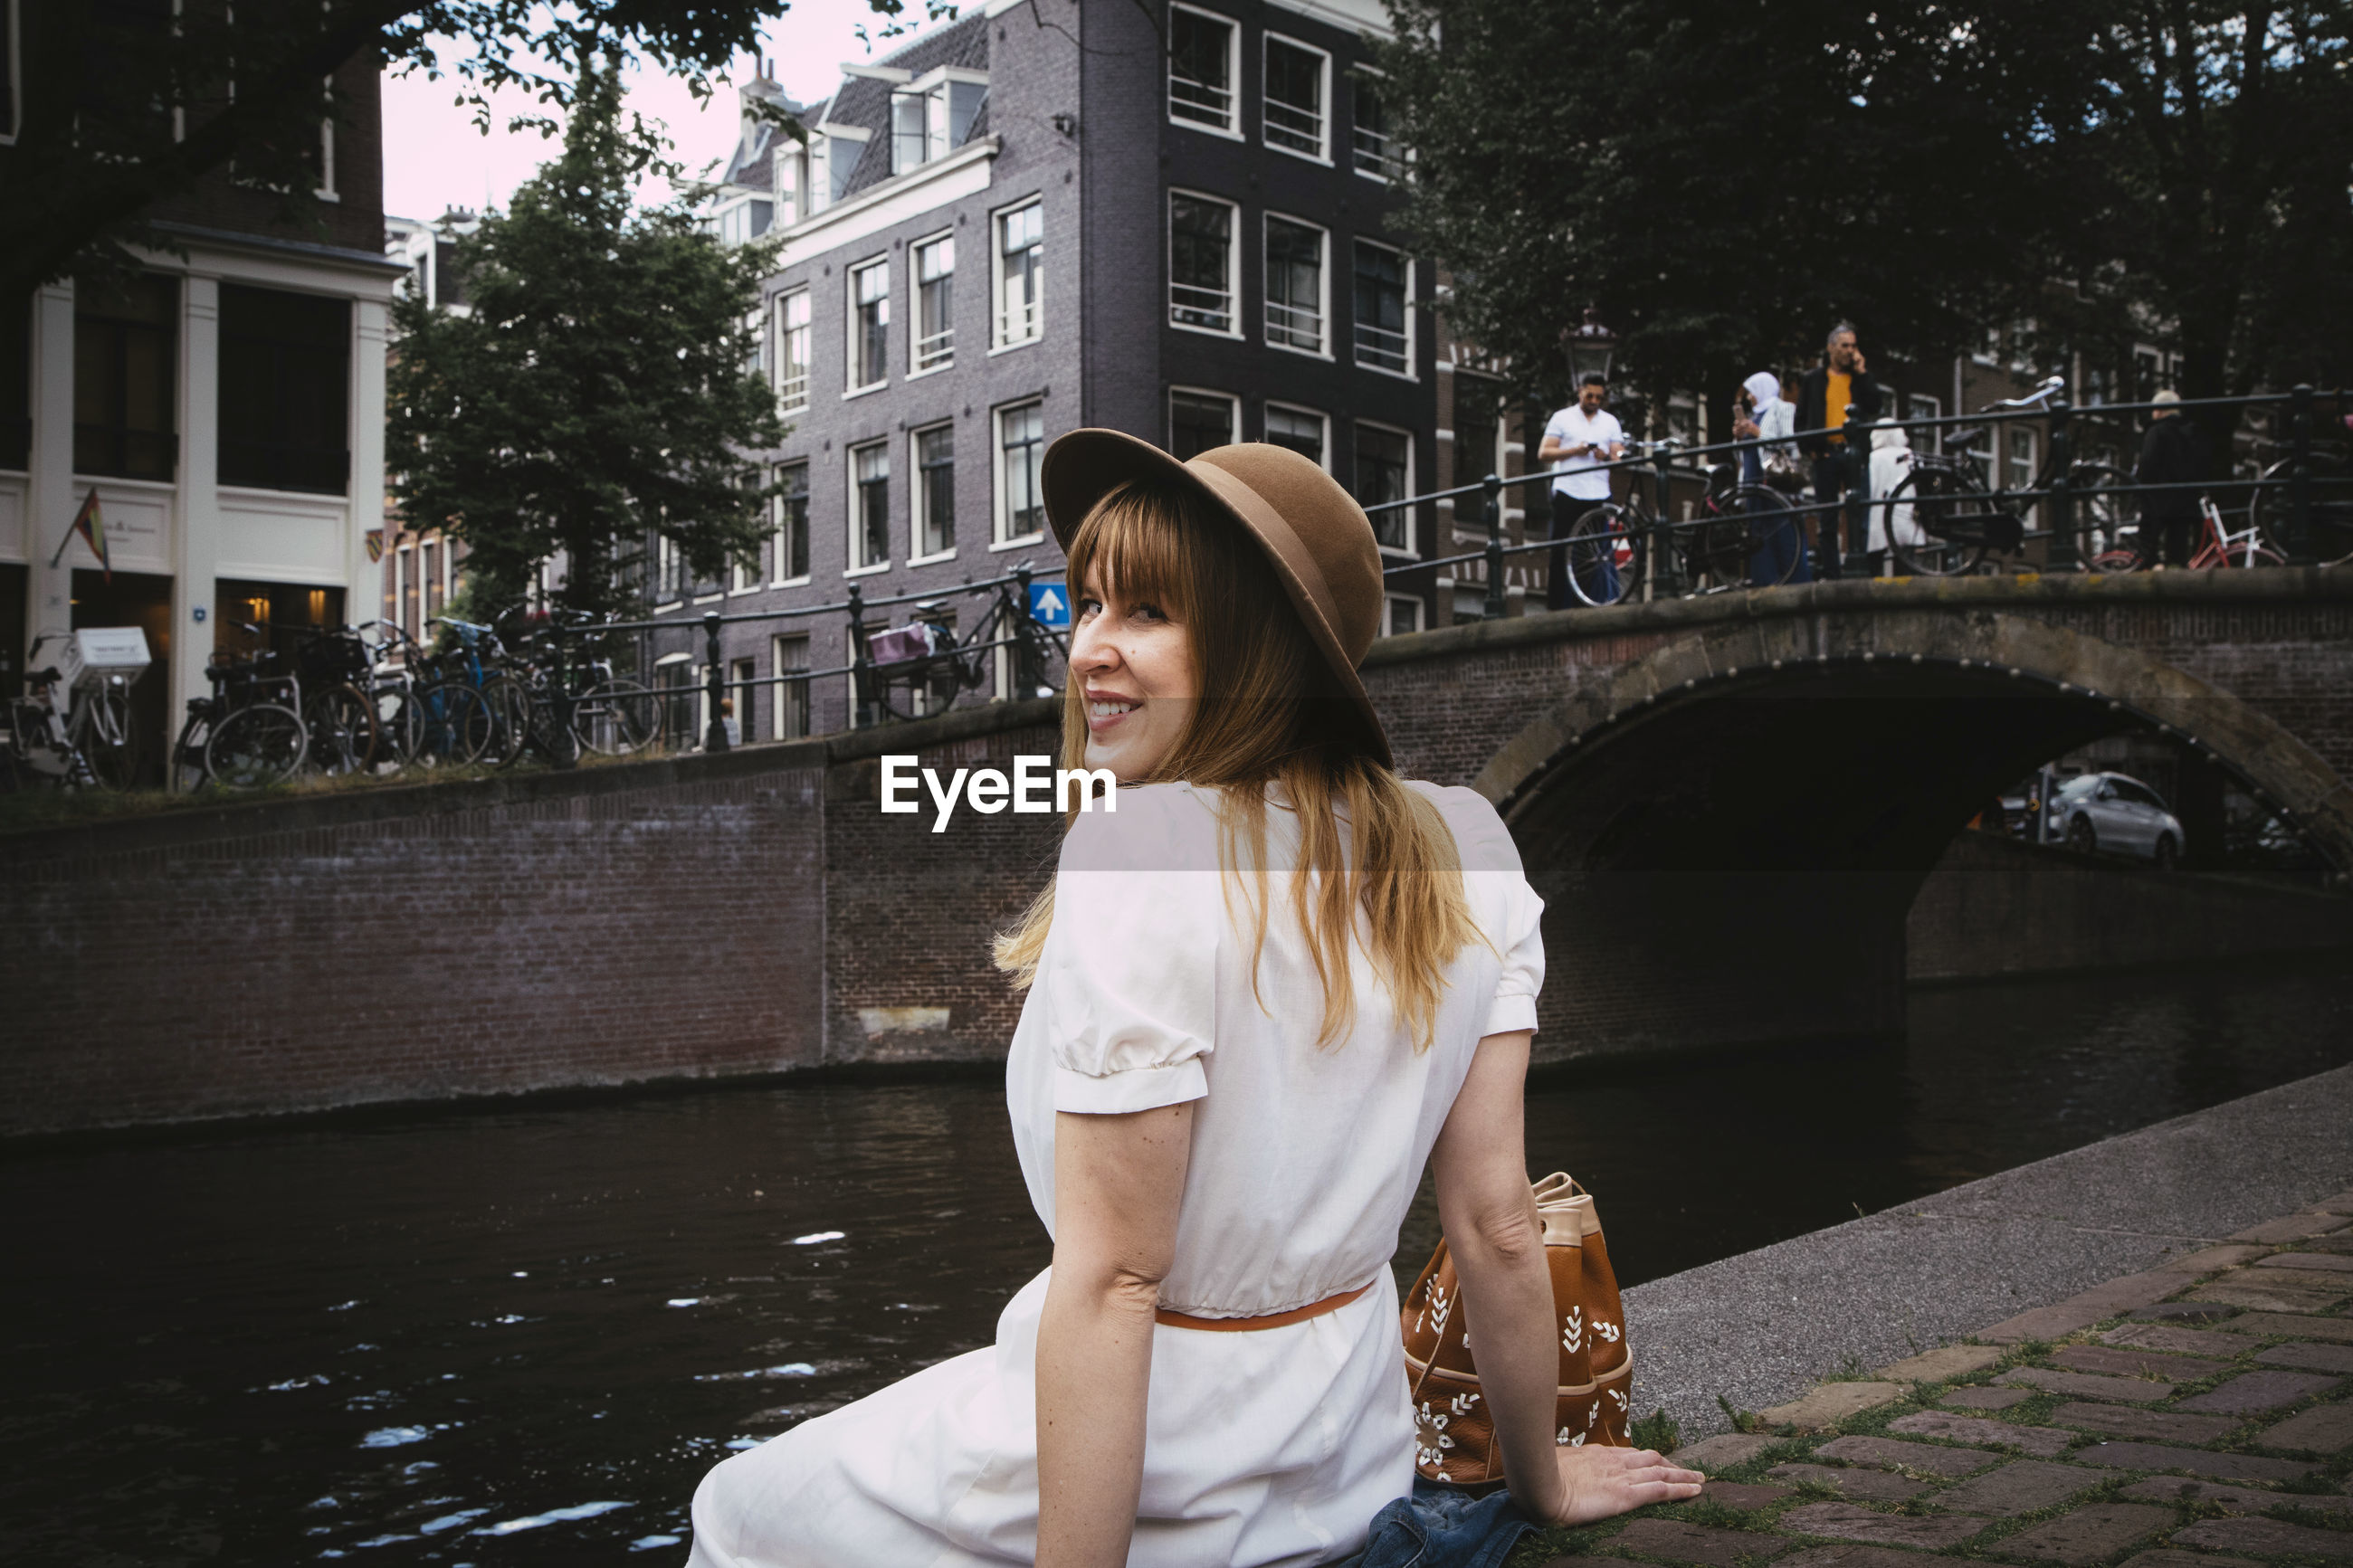 YOUNG WOMAN SMILING IN CANAL AT PARK